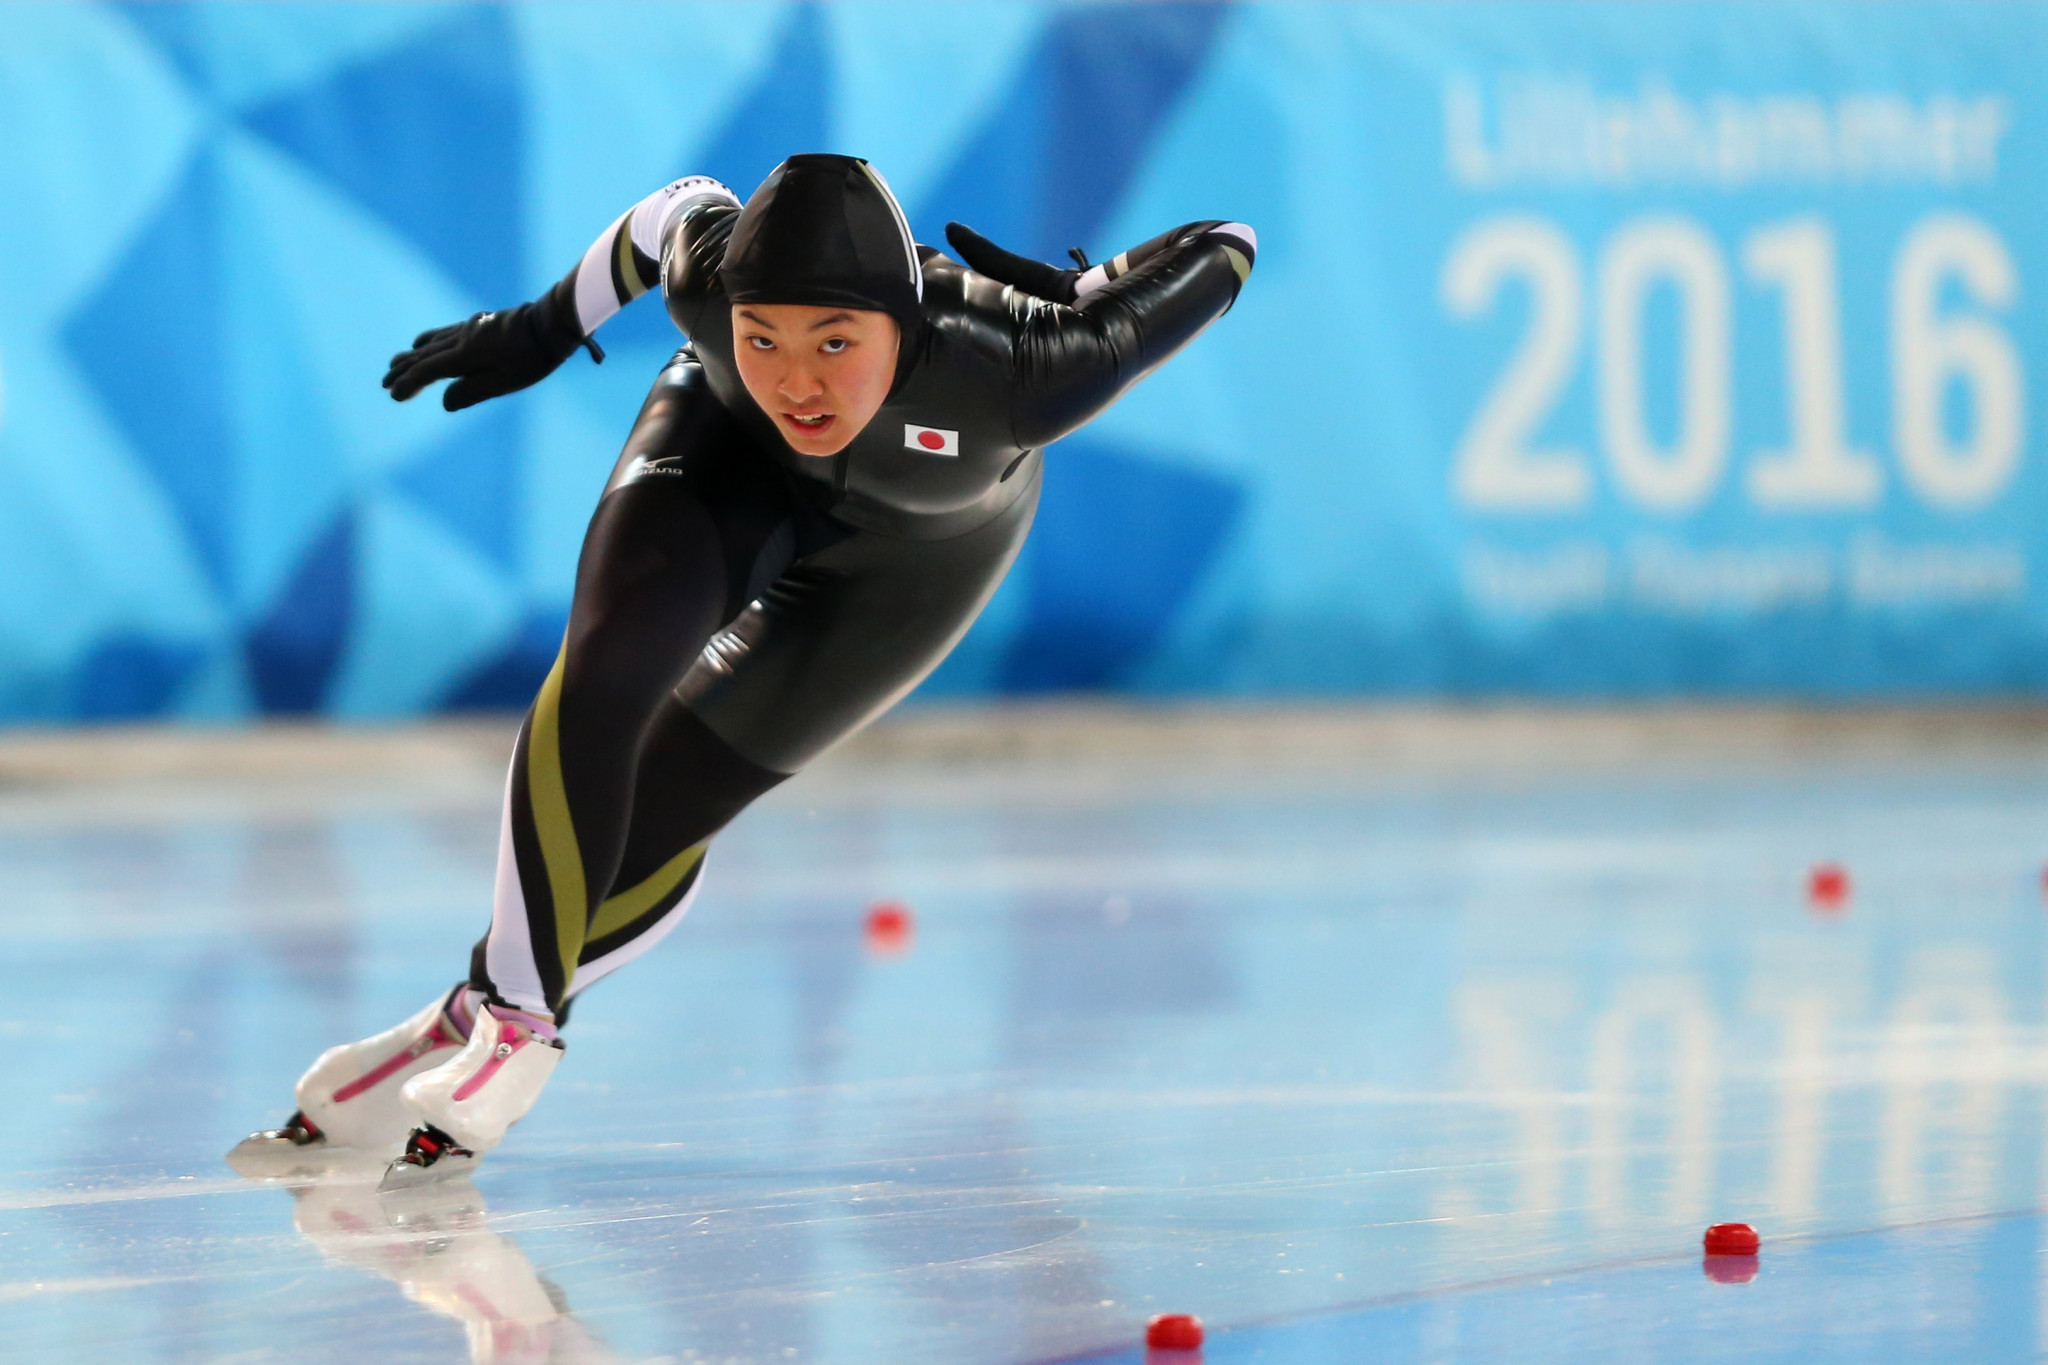 Lausanne 2020 reassures speed skaters Lake St Moritz venue sufficiently frozen for competition